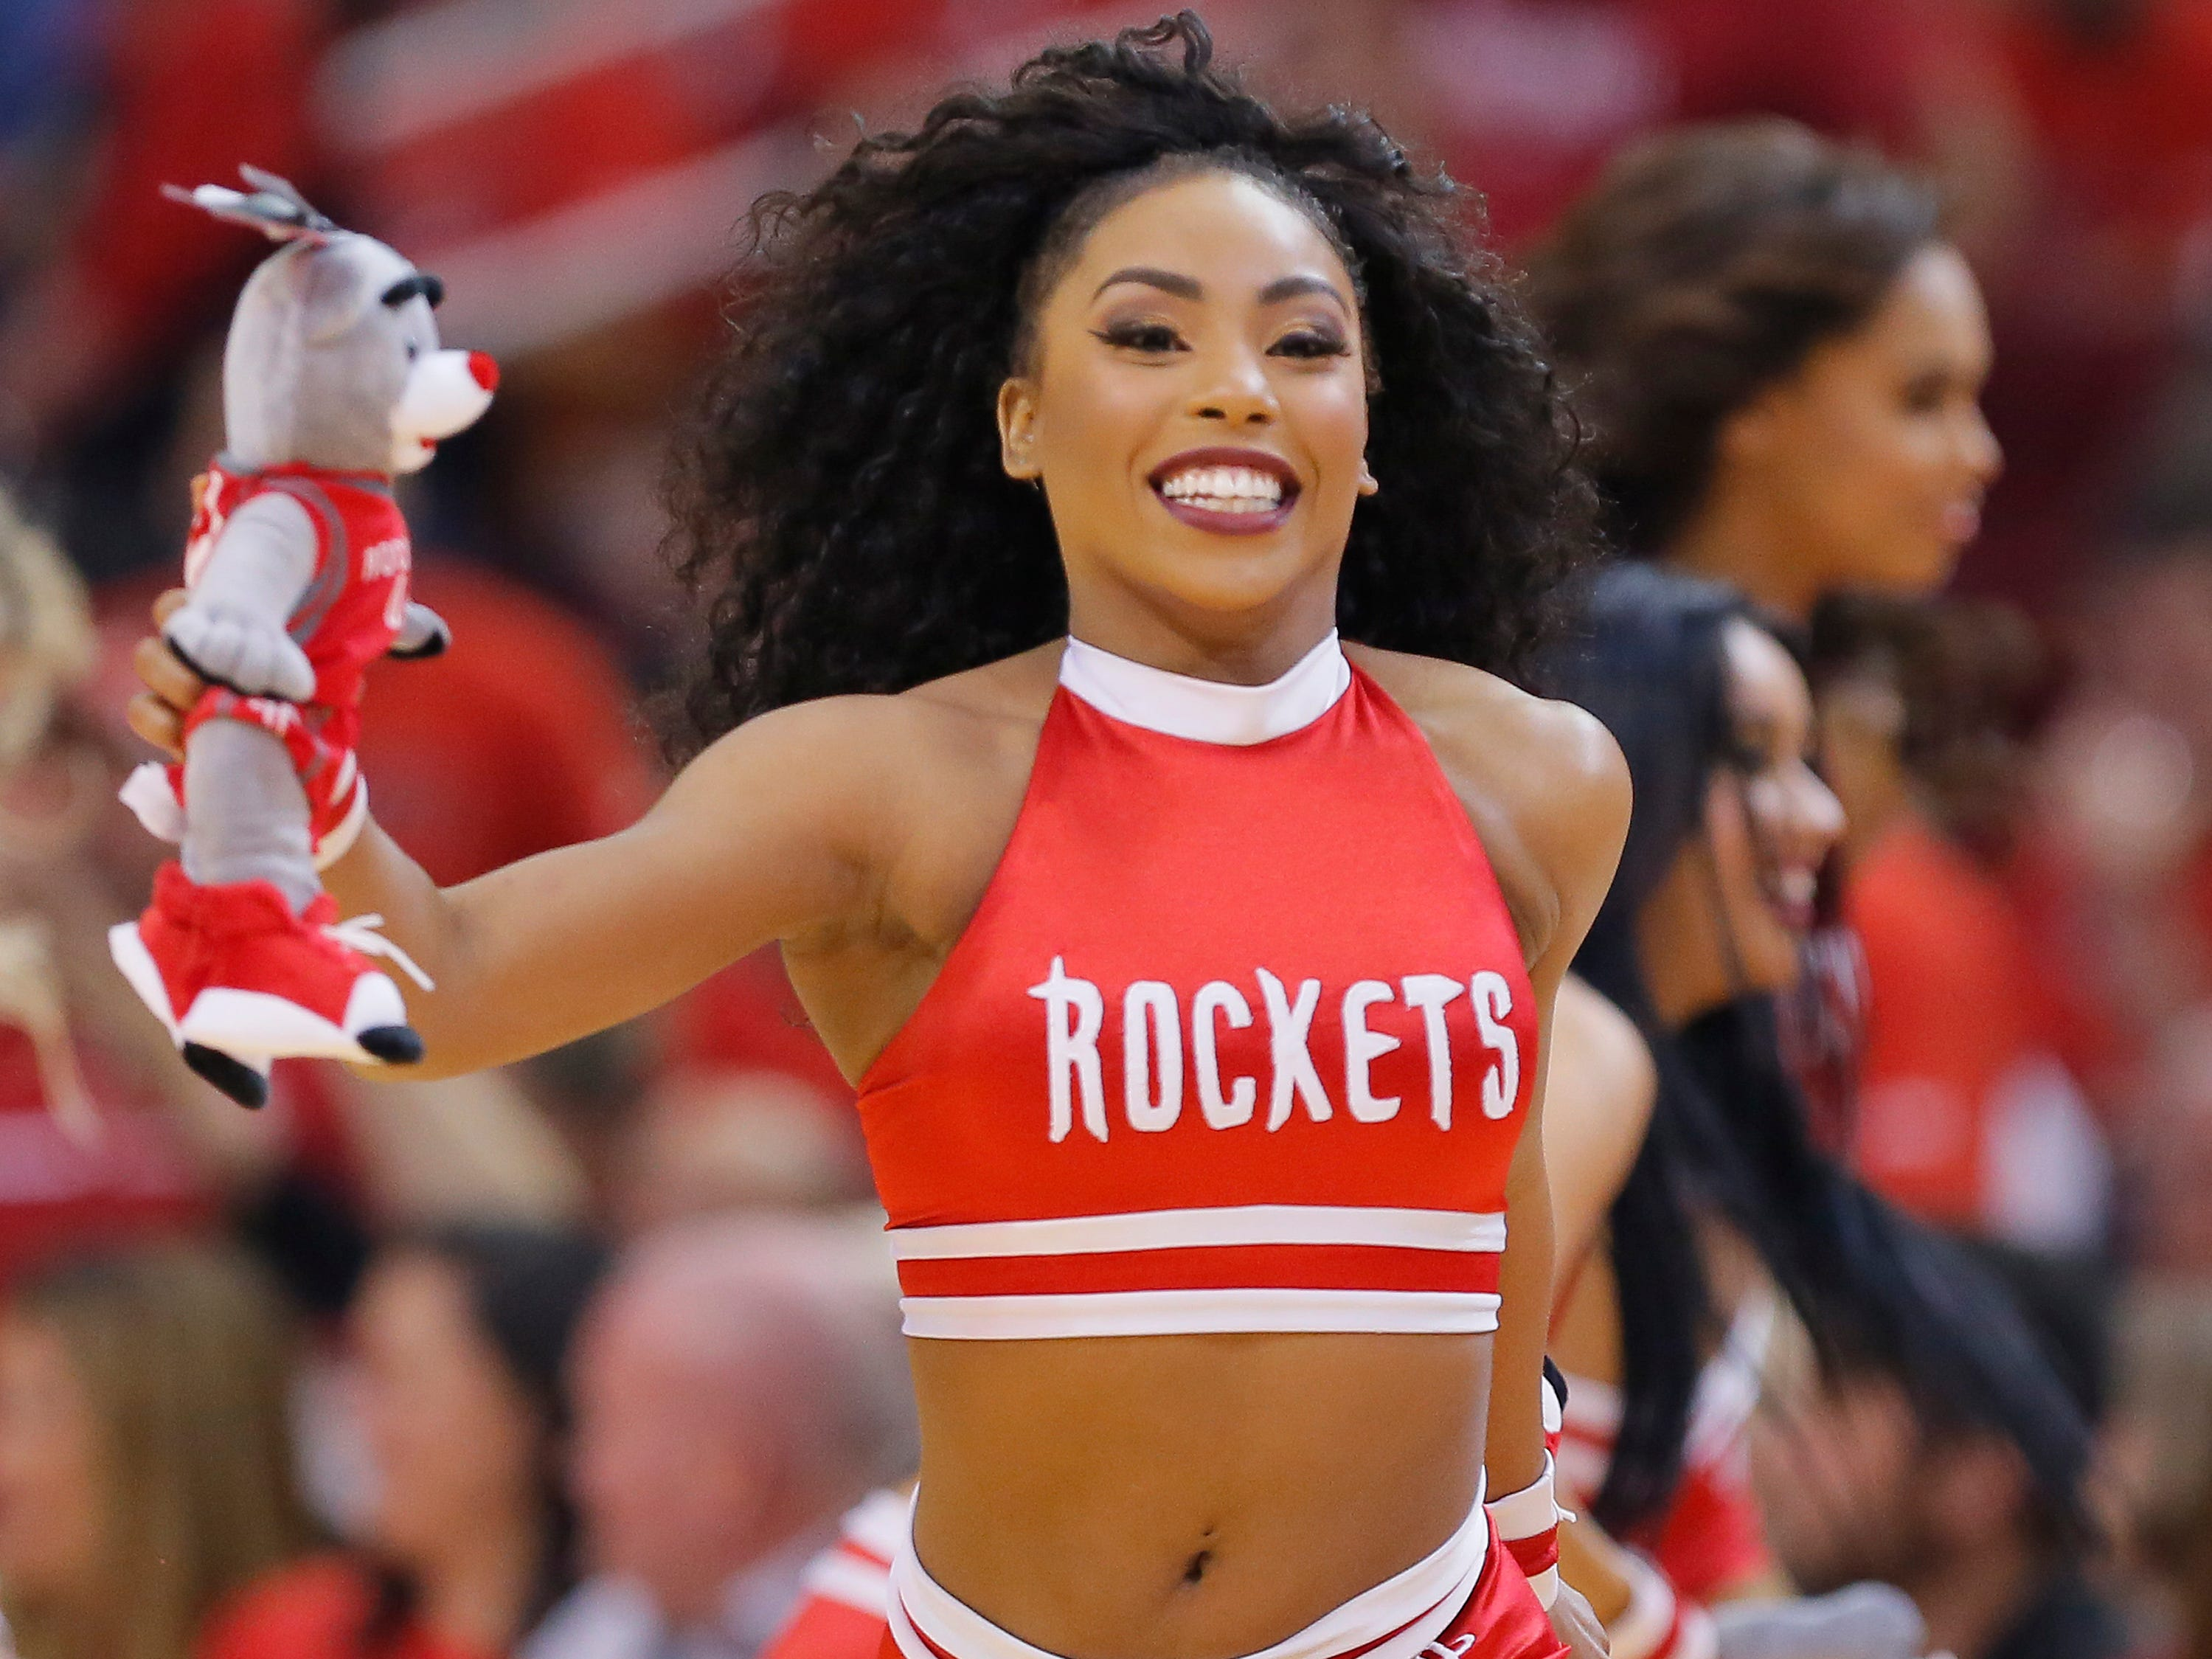 April 14: Rockets dancers perform during Game 1 against the Jazz.